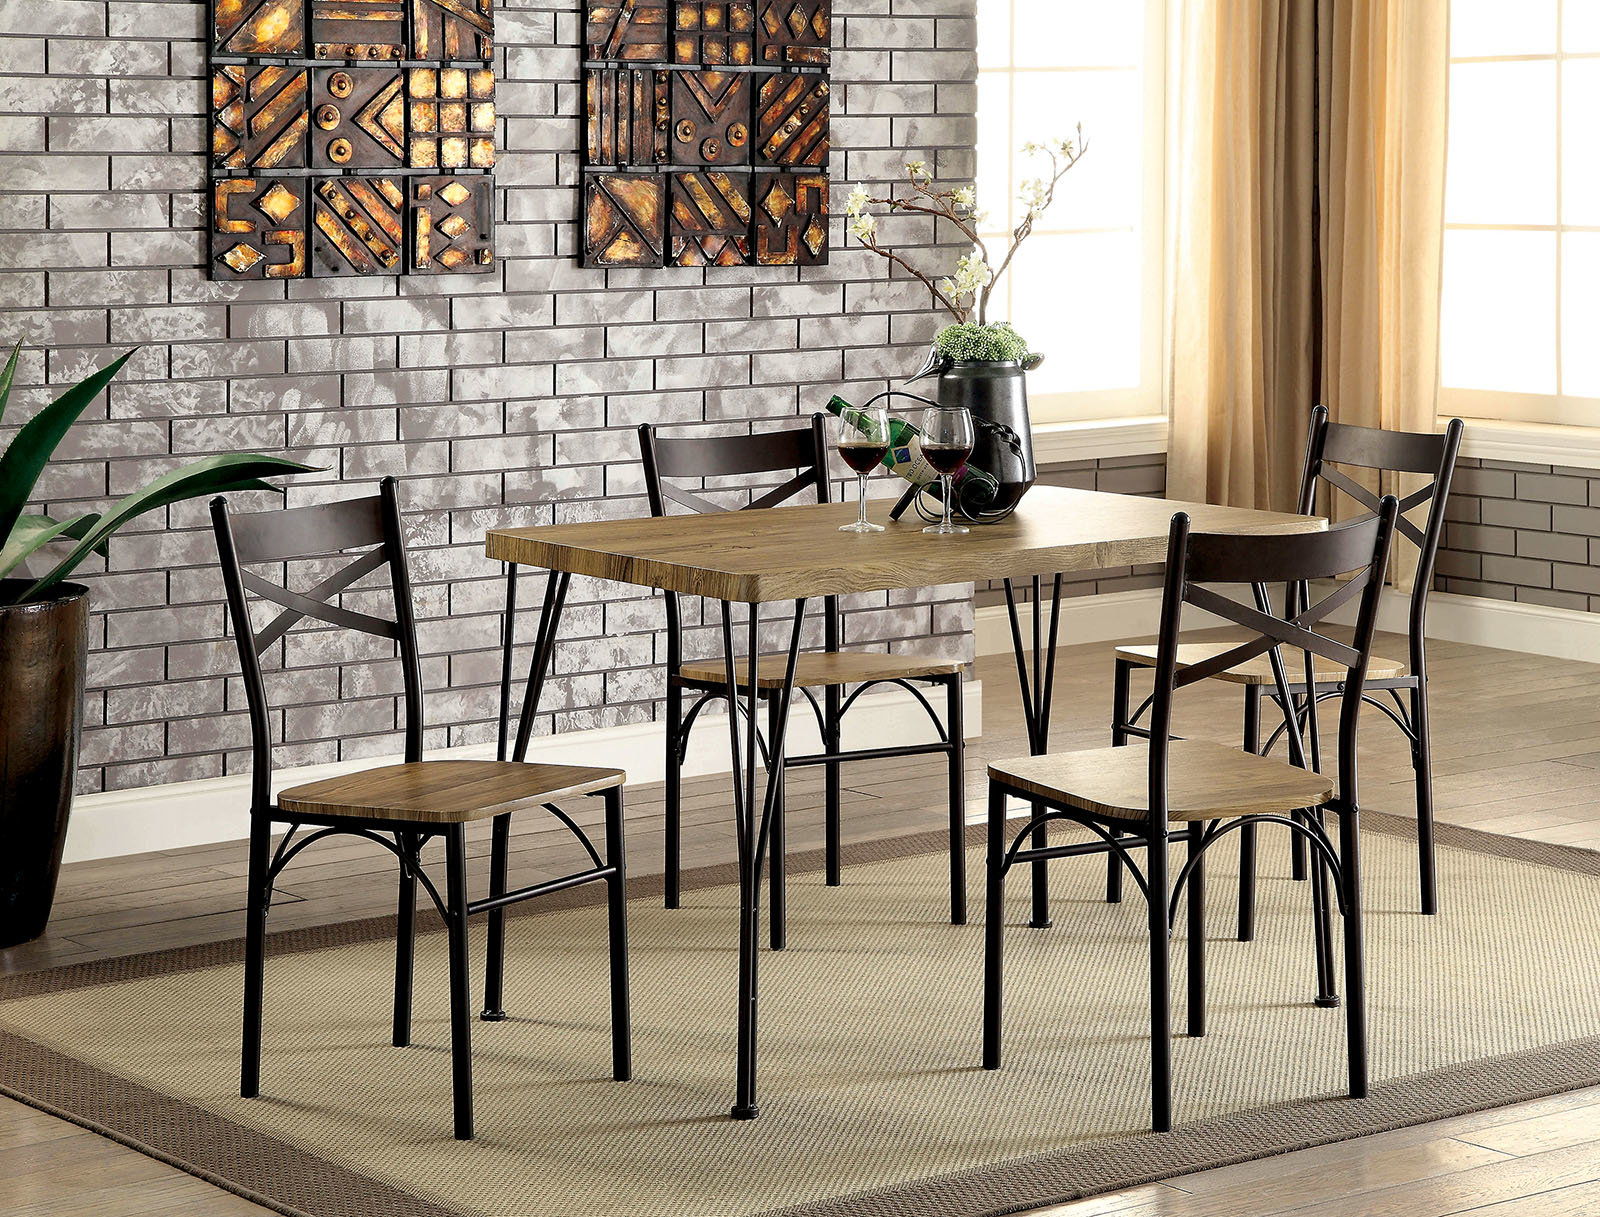 Balance 5 Piece Dining Set Within Best And Newest Telauges 5 Piece Dining Sets (View 11 of 20)